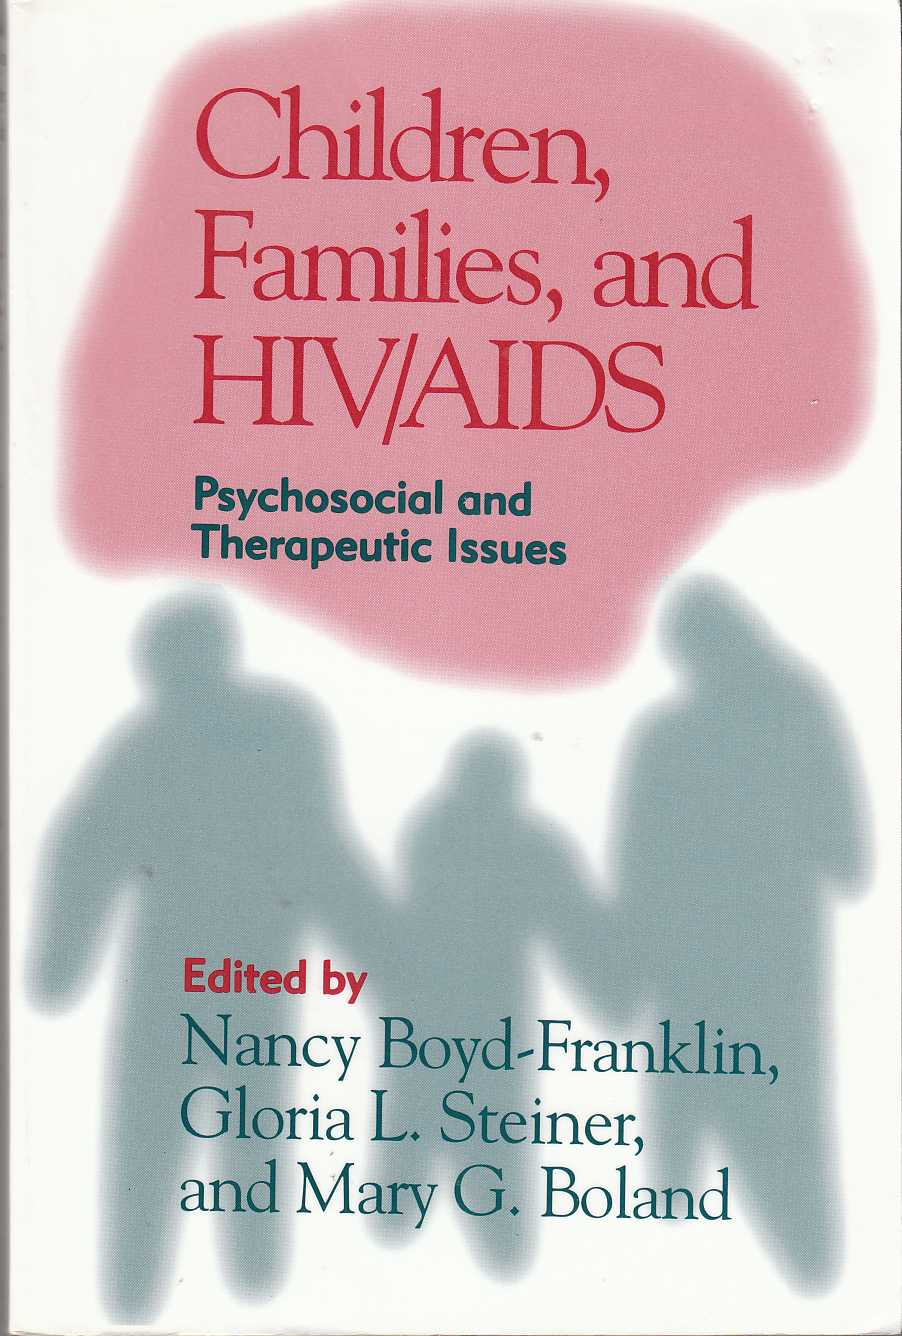 Image for Children, Families, and HIV/AIDS Psychosocial and Therapeutic Issues